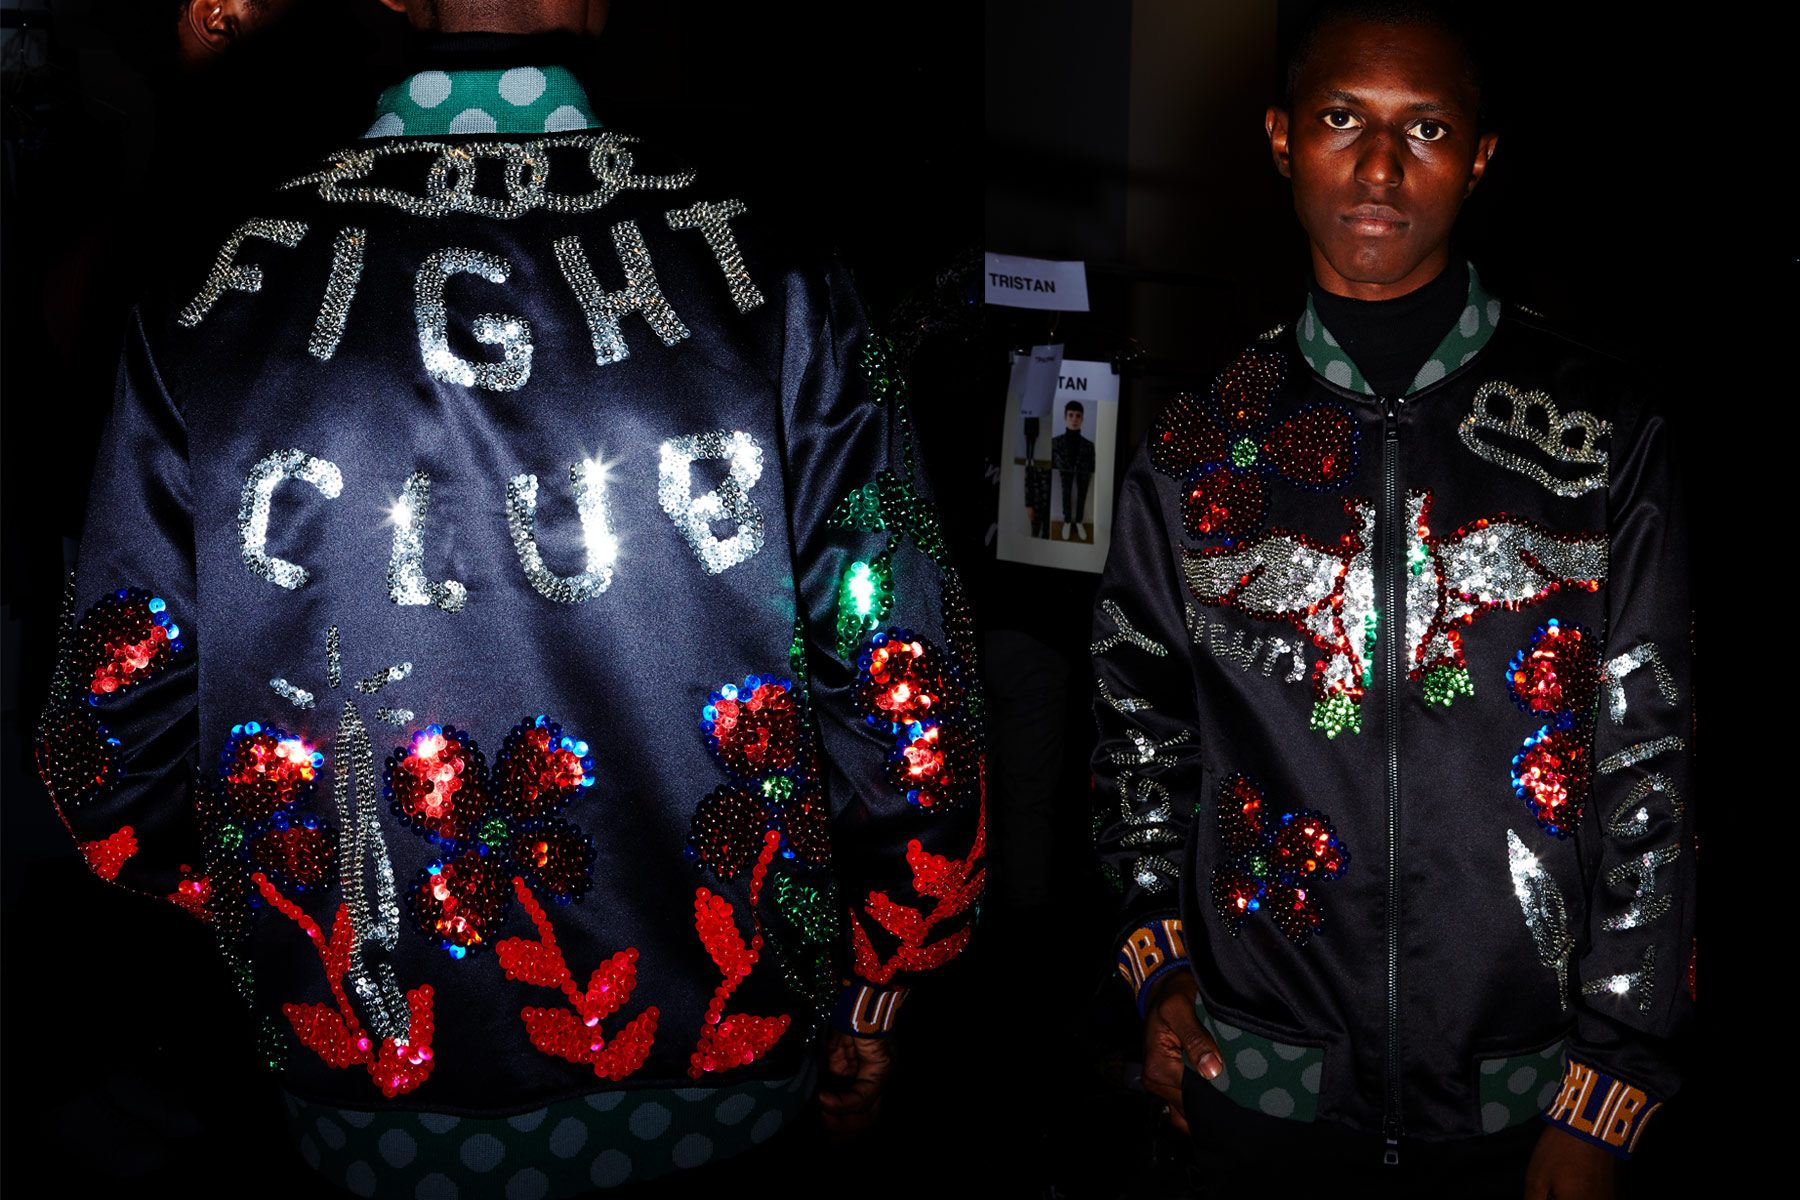 Sequined Fight Club jacket photographed backstage on a male model at Libertine for Fall 2018. Photography by Alexander Thompson for Ponyboy magazine.